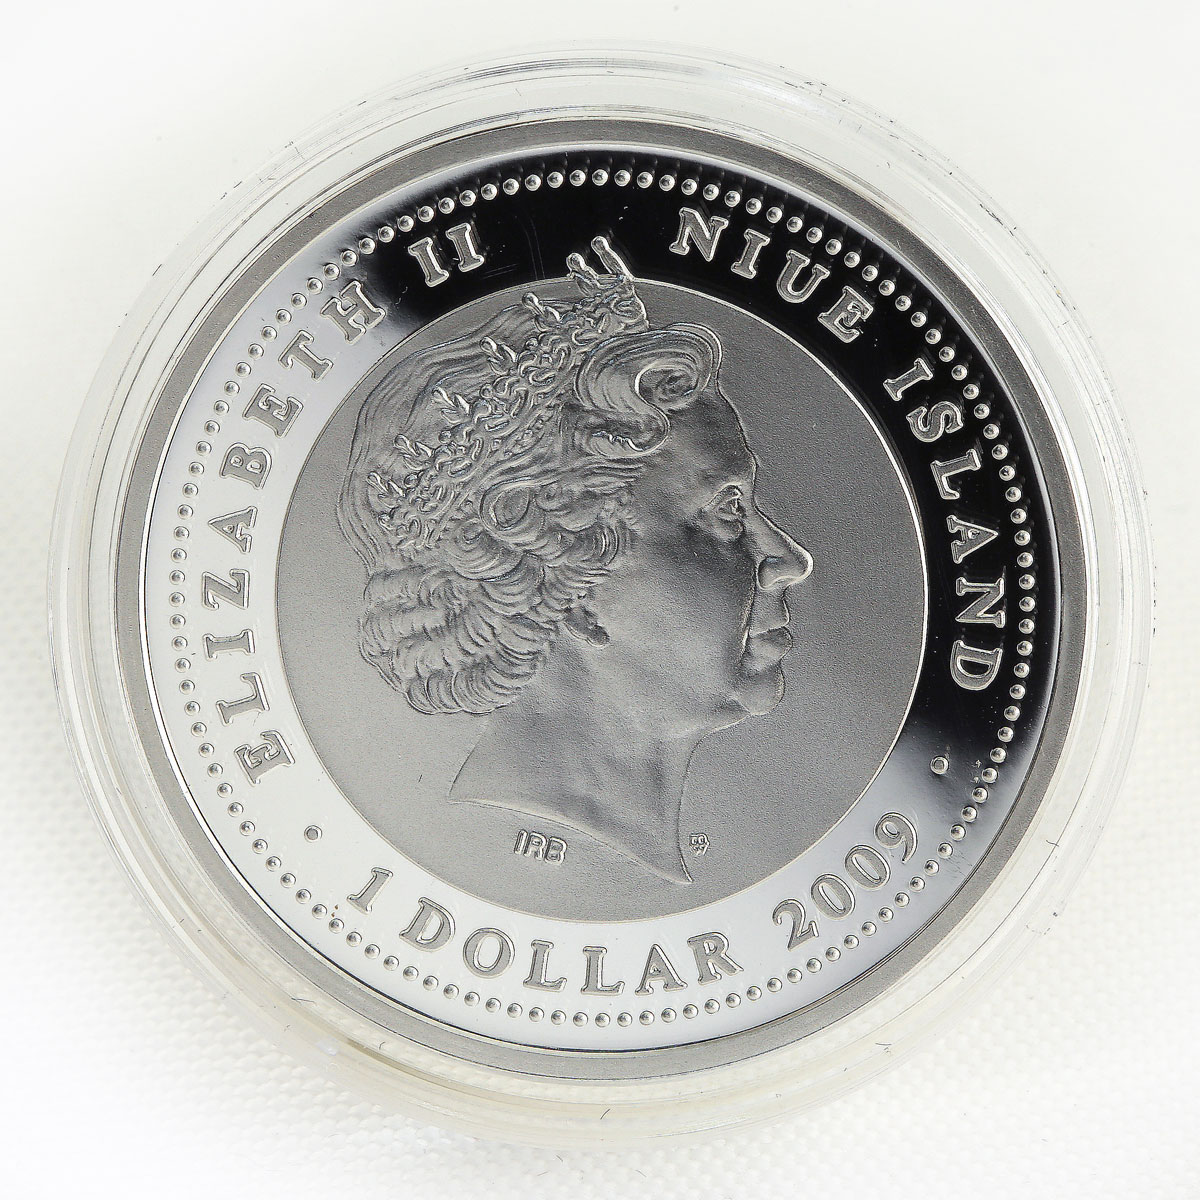 Niue 1 dollar Year of the Tiger Lunar silver color coin 2009